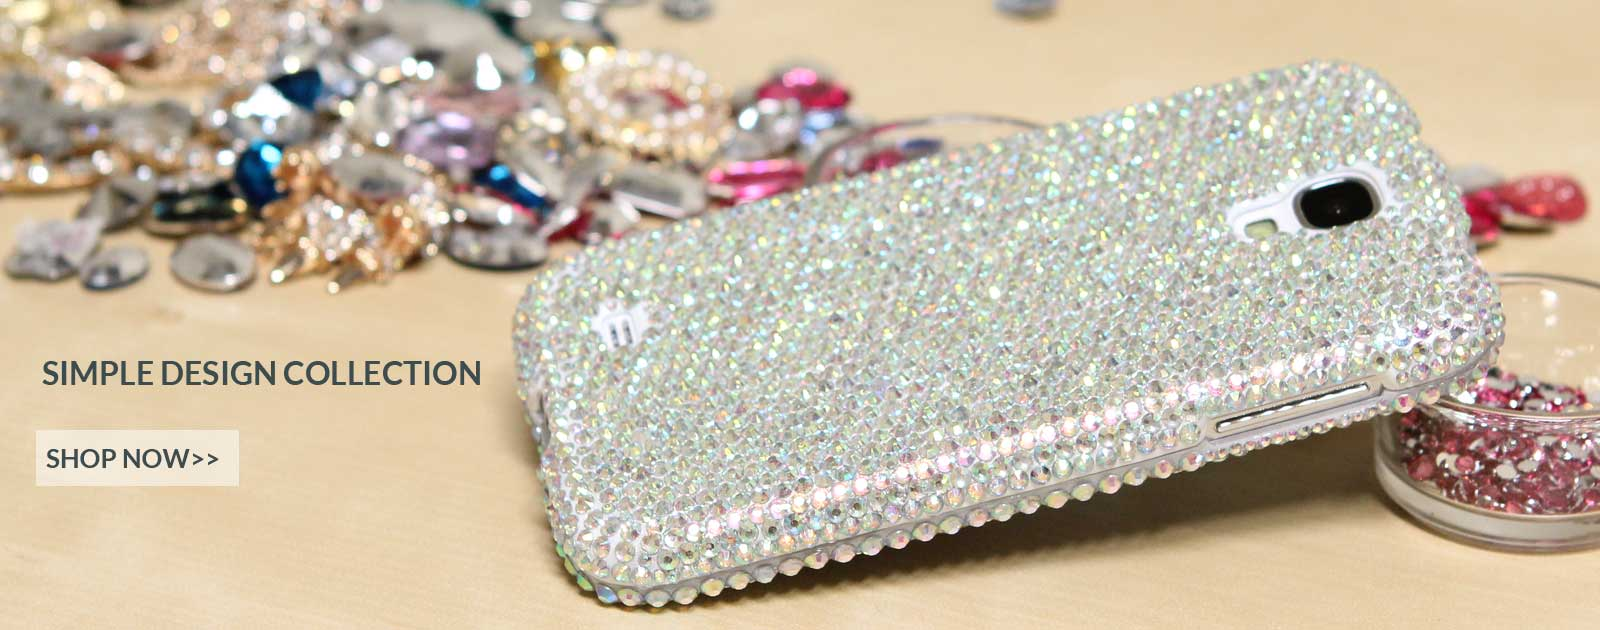 LG G3 BLING CASES u2013 LuxAddiction.com